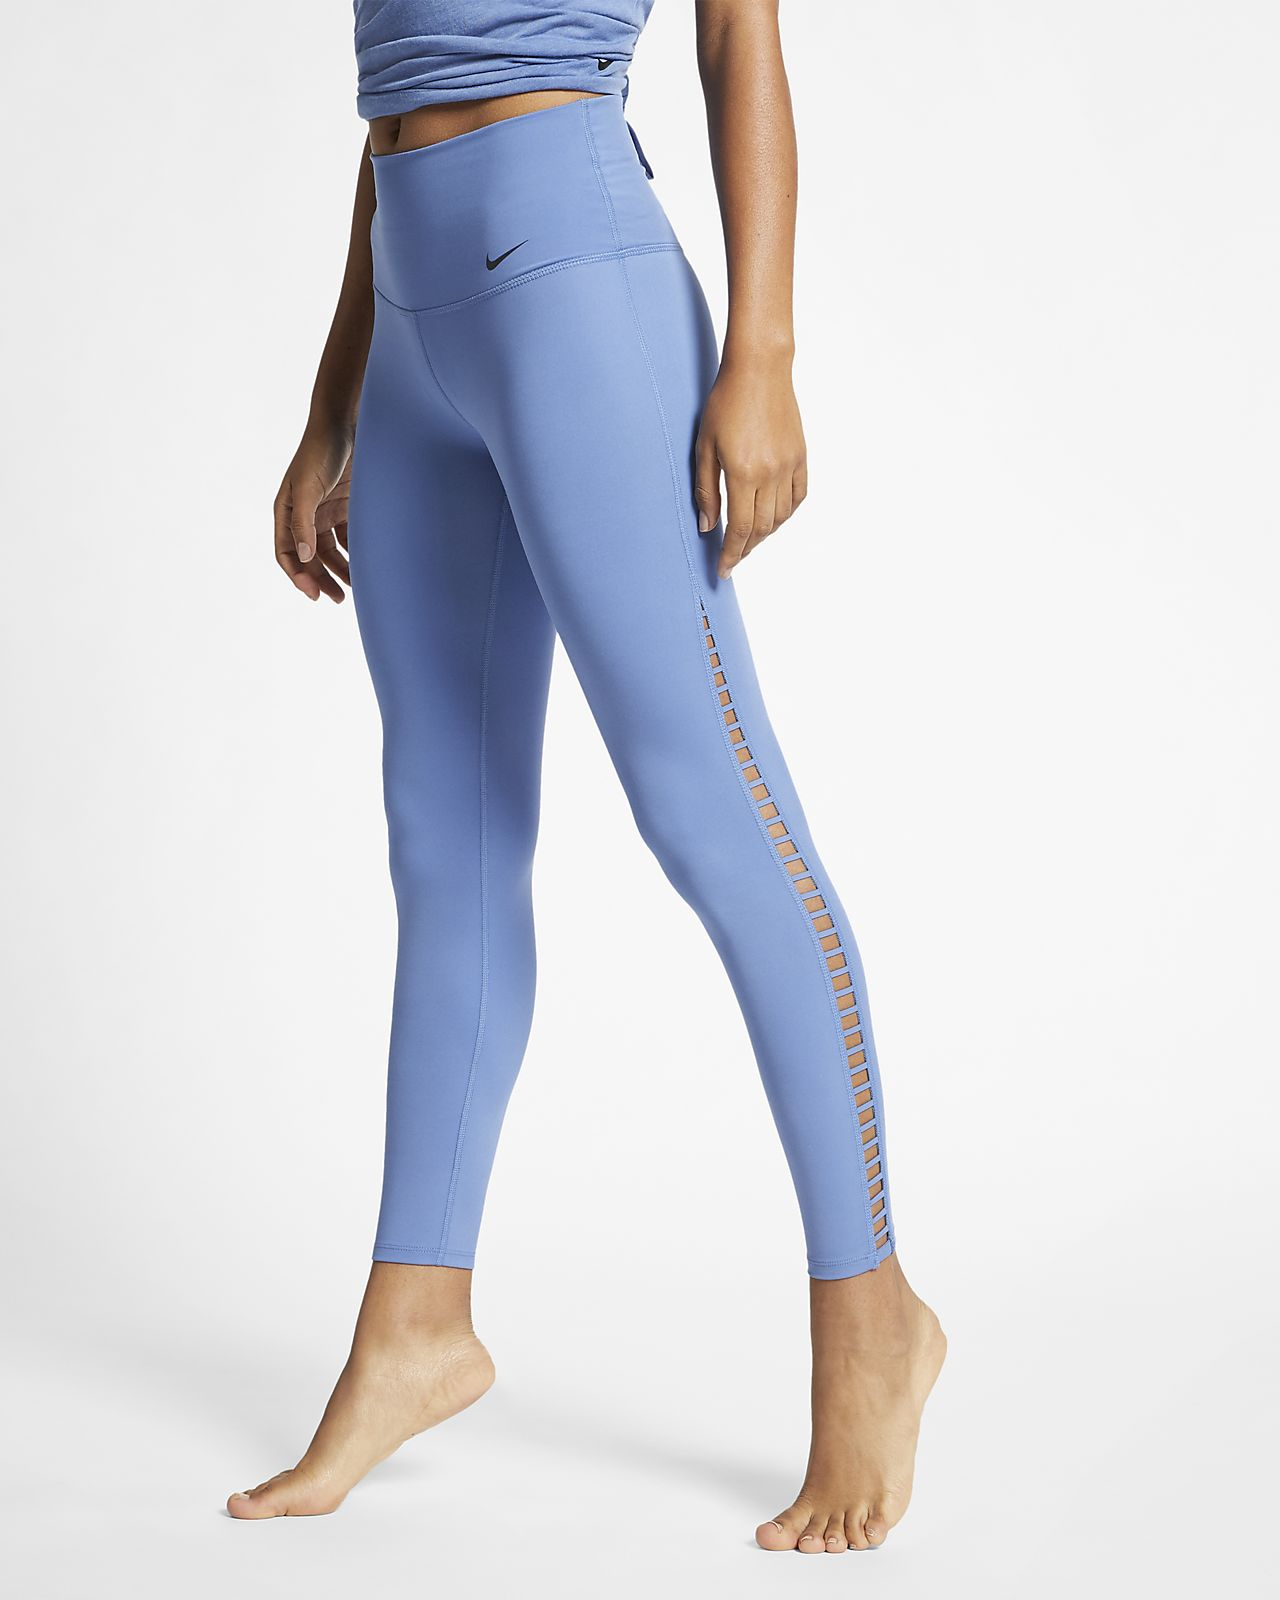 Tight d'entraînement de yoga 7/8 Nike Dri-FIT Power pour Femme